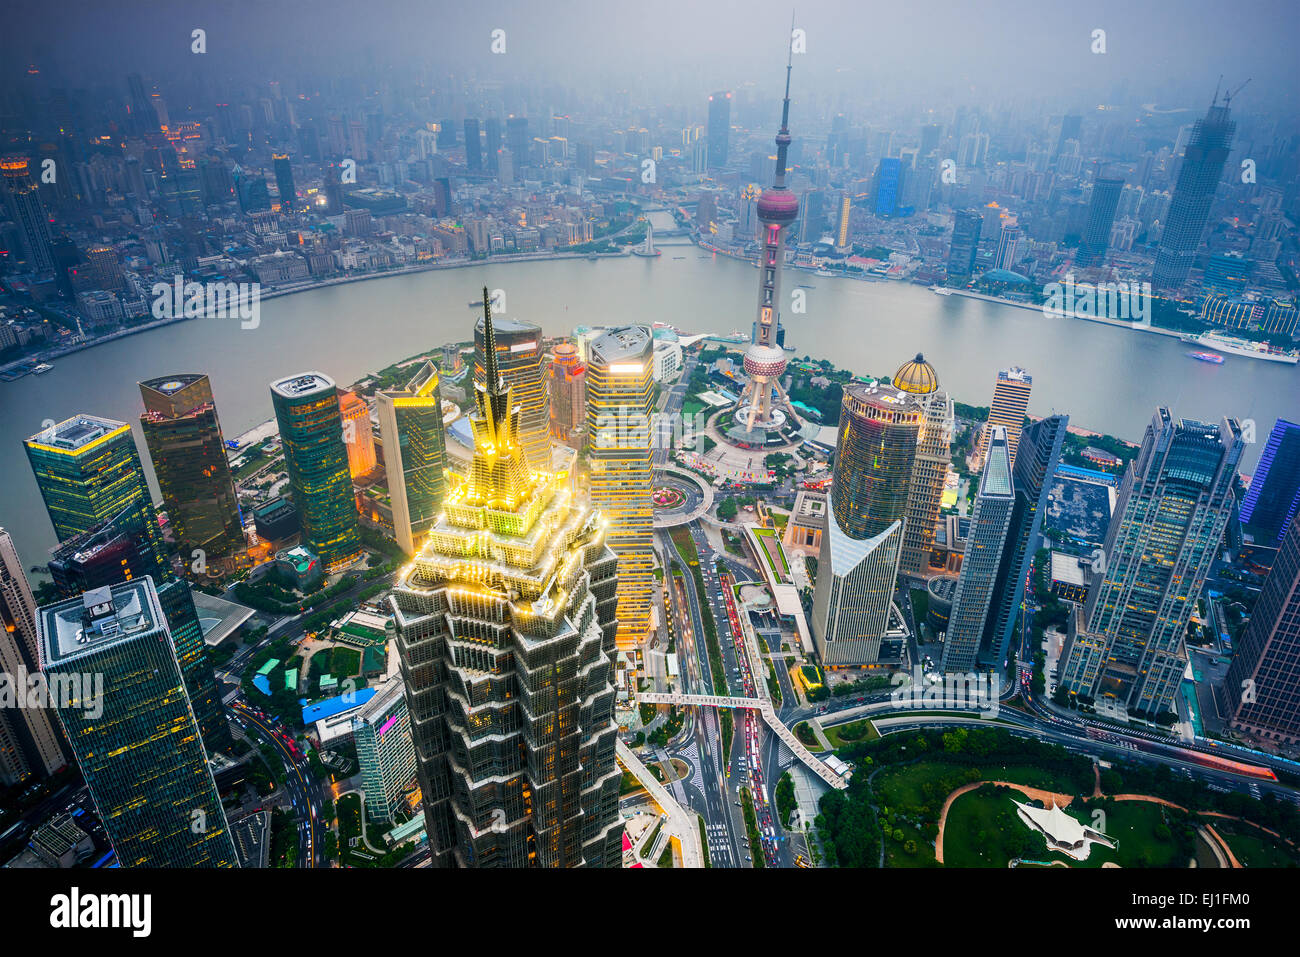 Shanghai, China cityscape over the financial district. - Stock Image